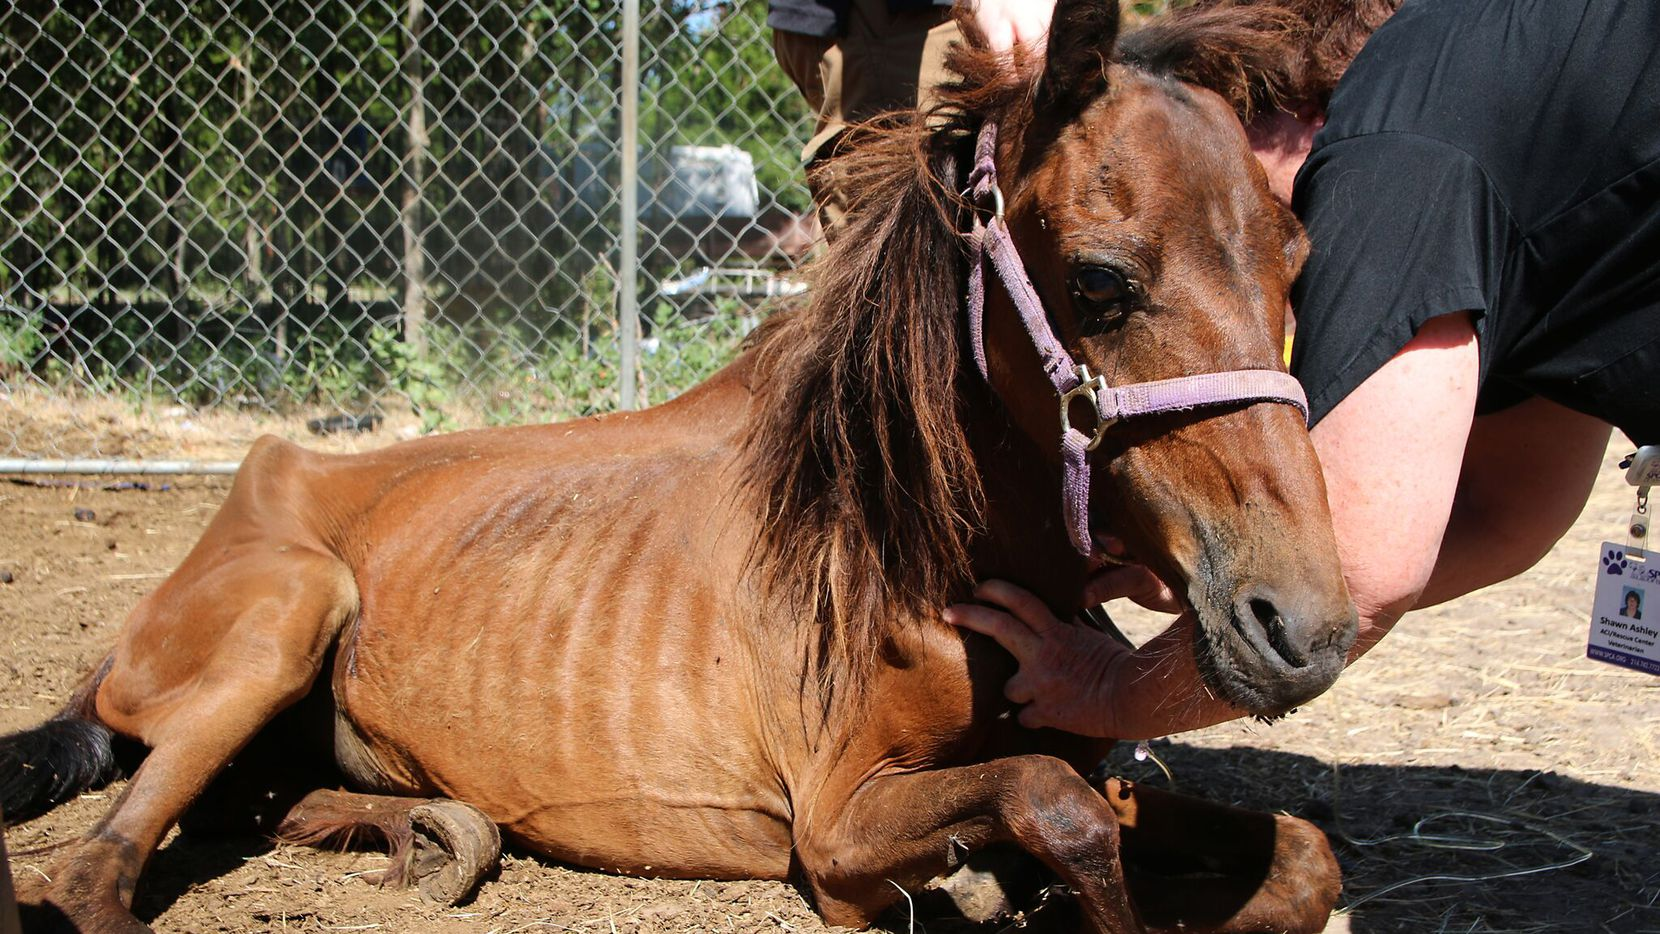 One of the starved horses the SPCA seized from a property in Dallas County.